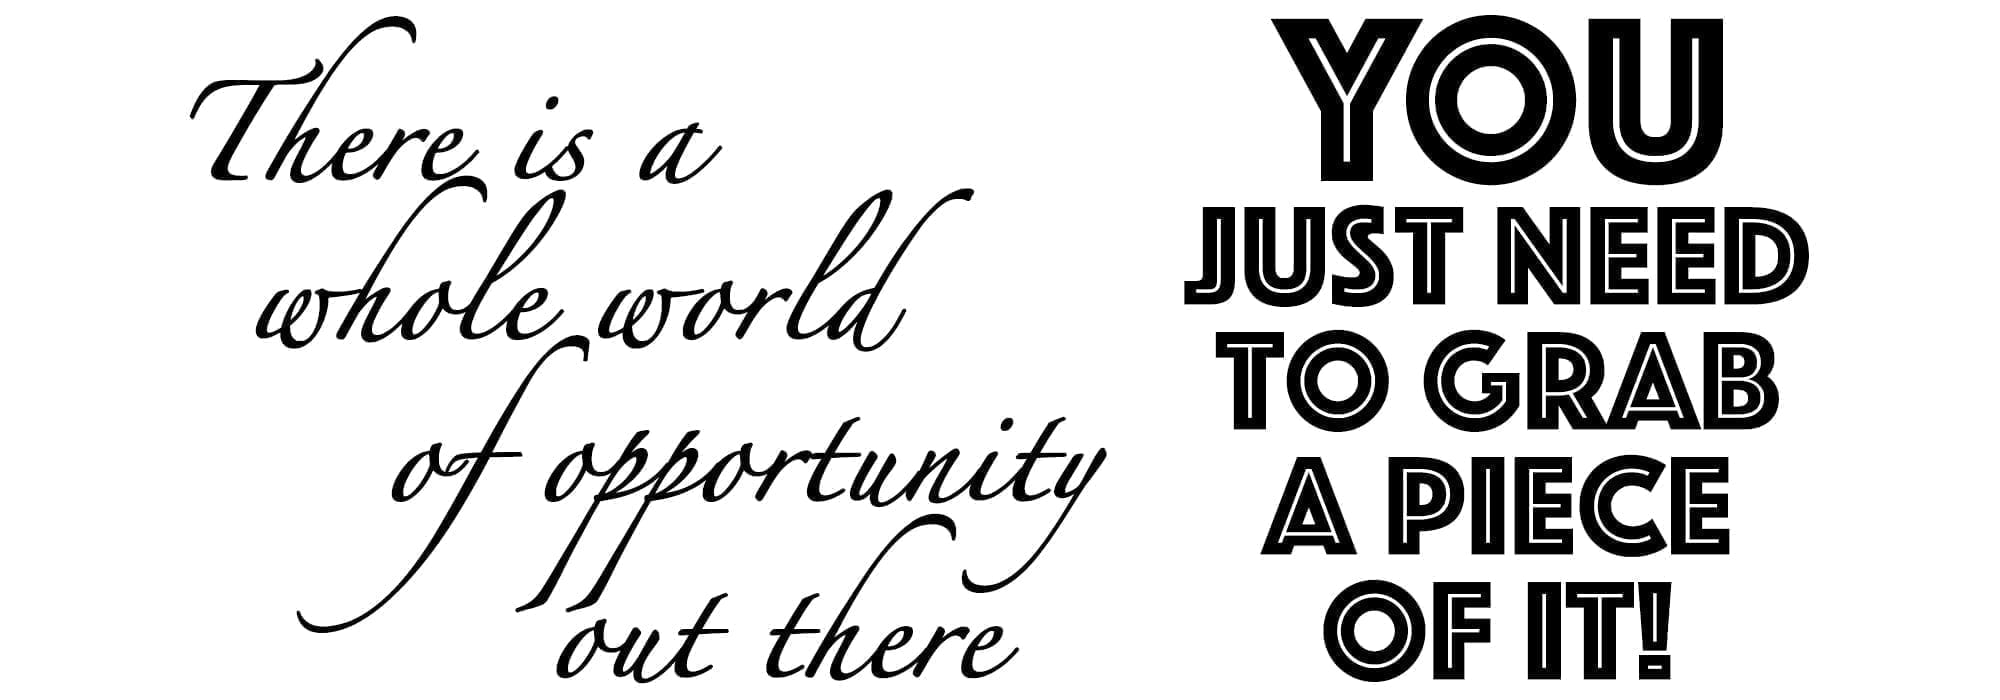 There is a whole world of opportunity out there - Seventa Makeup Academy